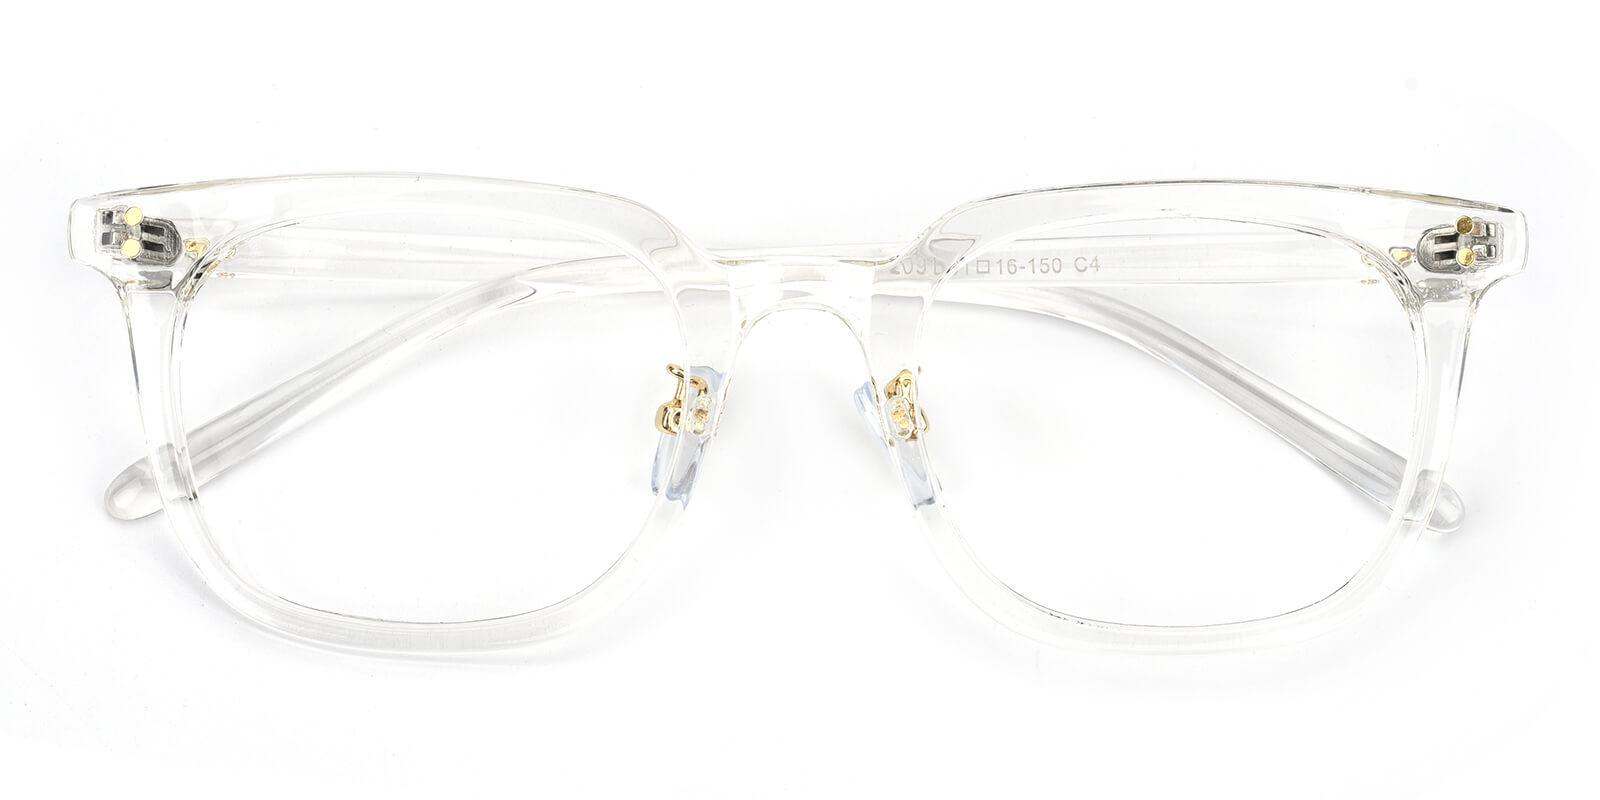 Adria-Translucent-Square-TR-Eyeglasses-detail